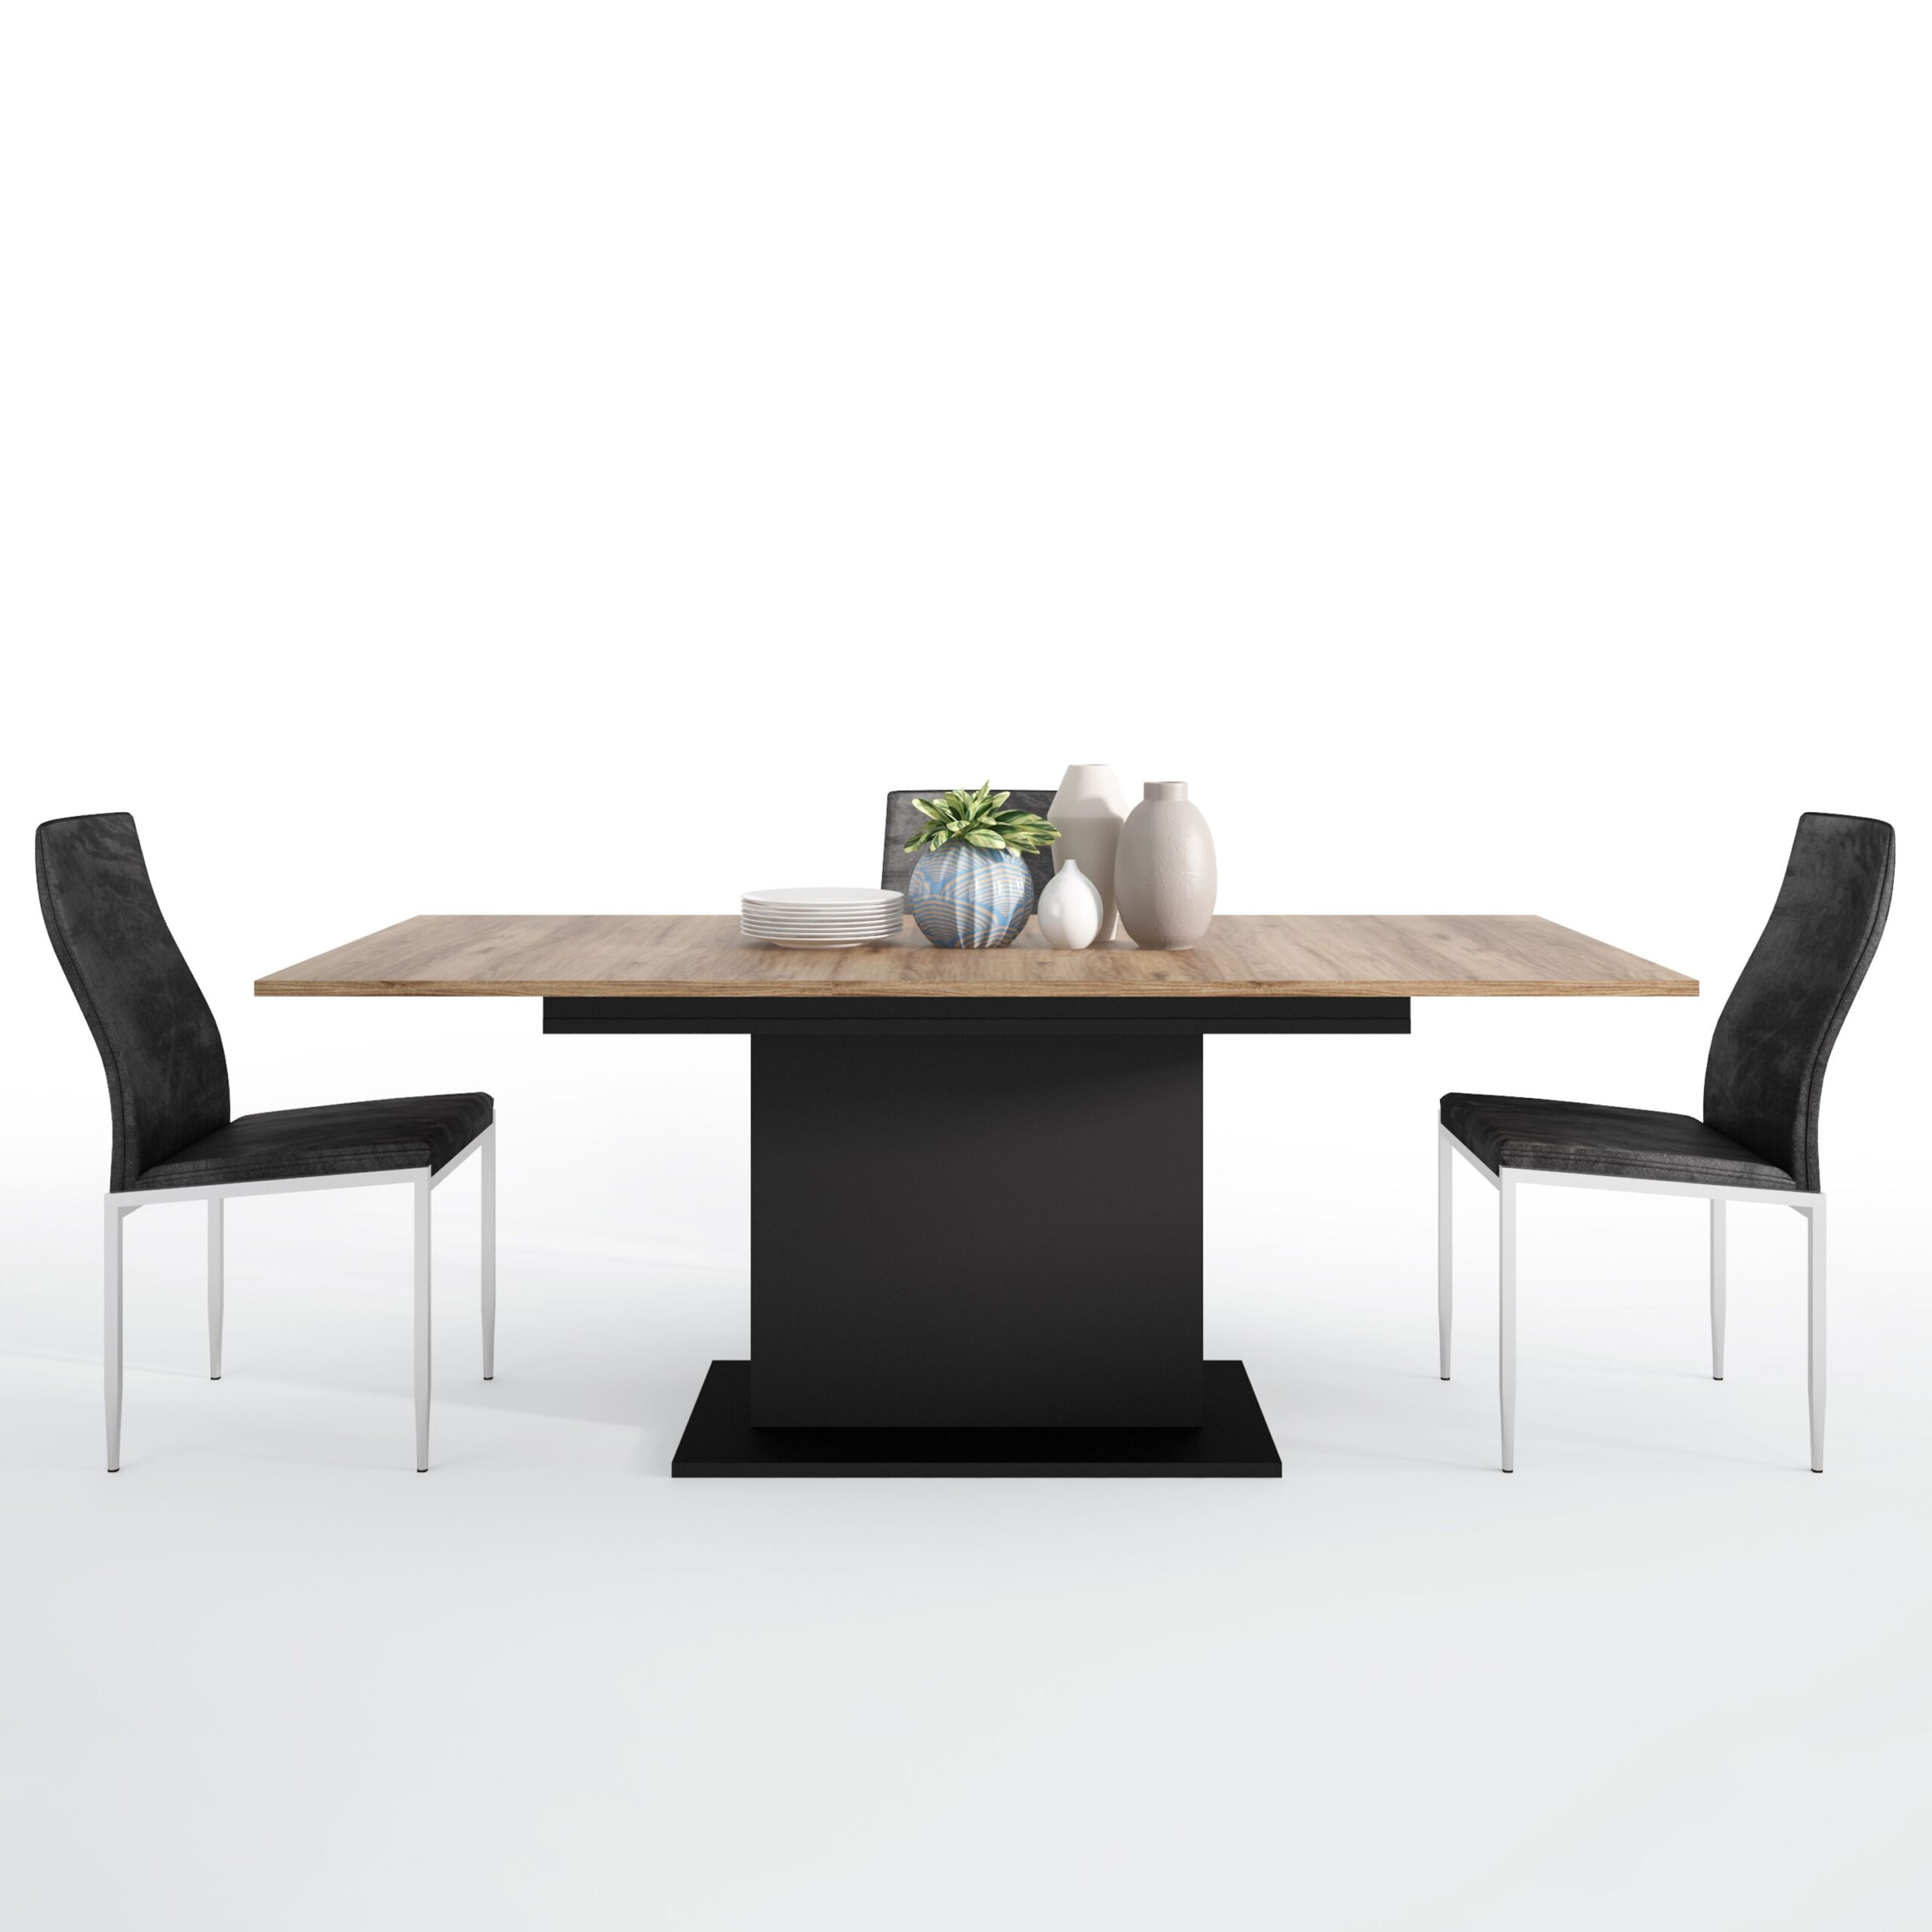 Yolo Dining set package Yolo Extending Dining Table + 6 Lillie High Back Chair Black